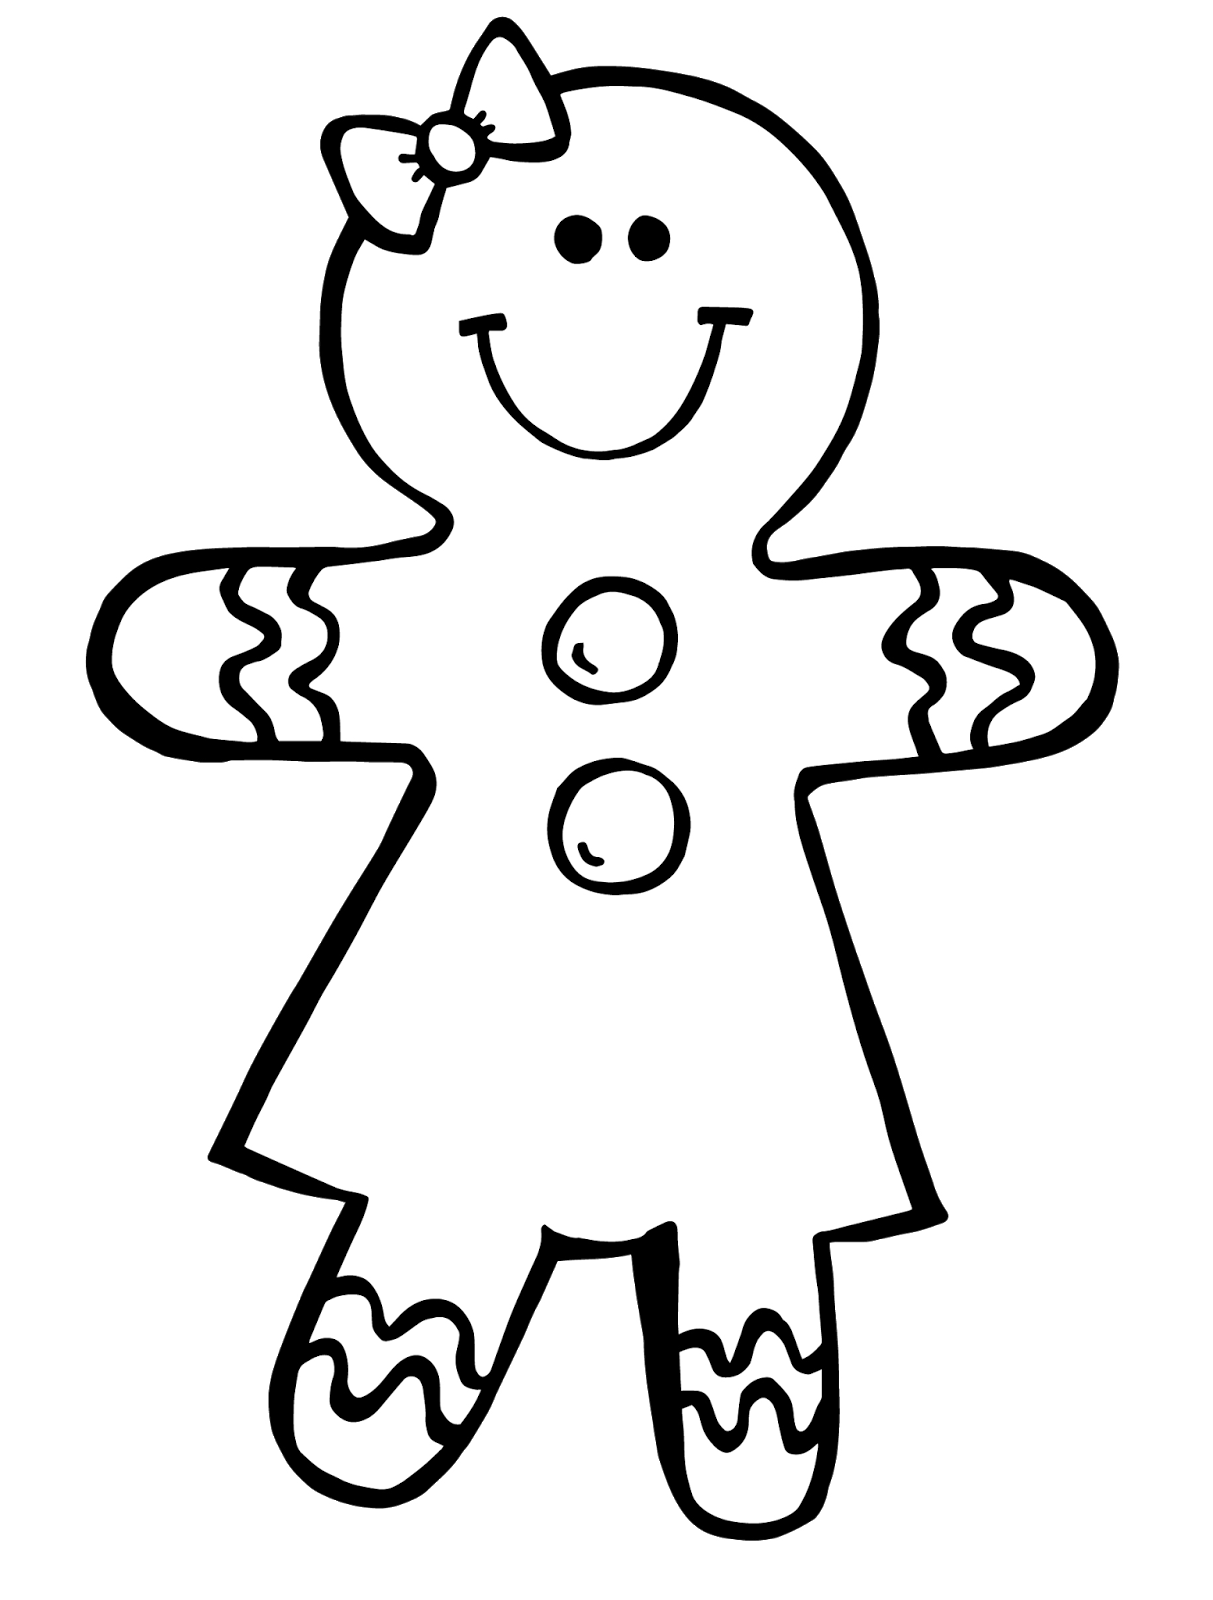 Free black and white gingerbread man clipart clipart download Free Gingerbread House Clipart, Download Free Clip Art, Free Clip ... clipart download